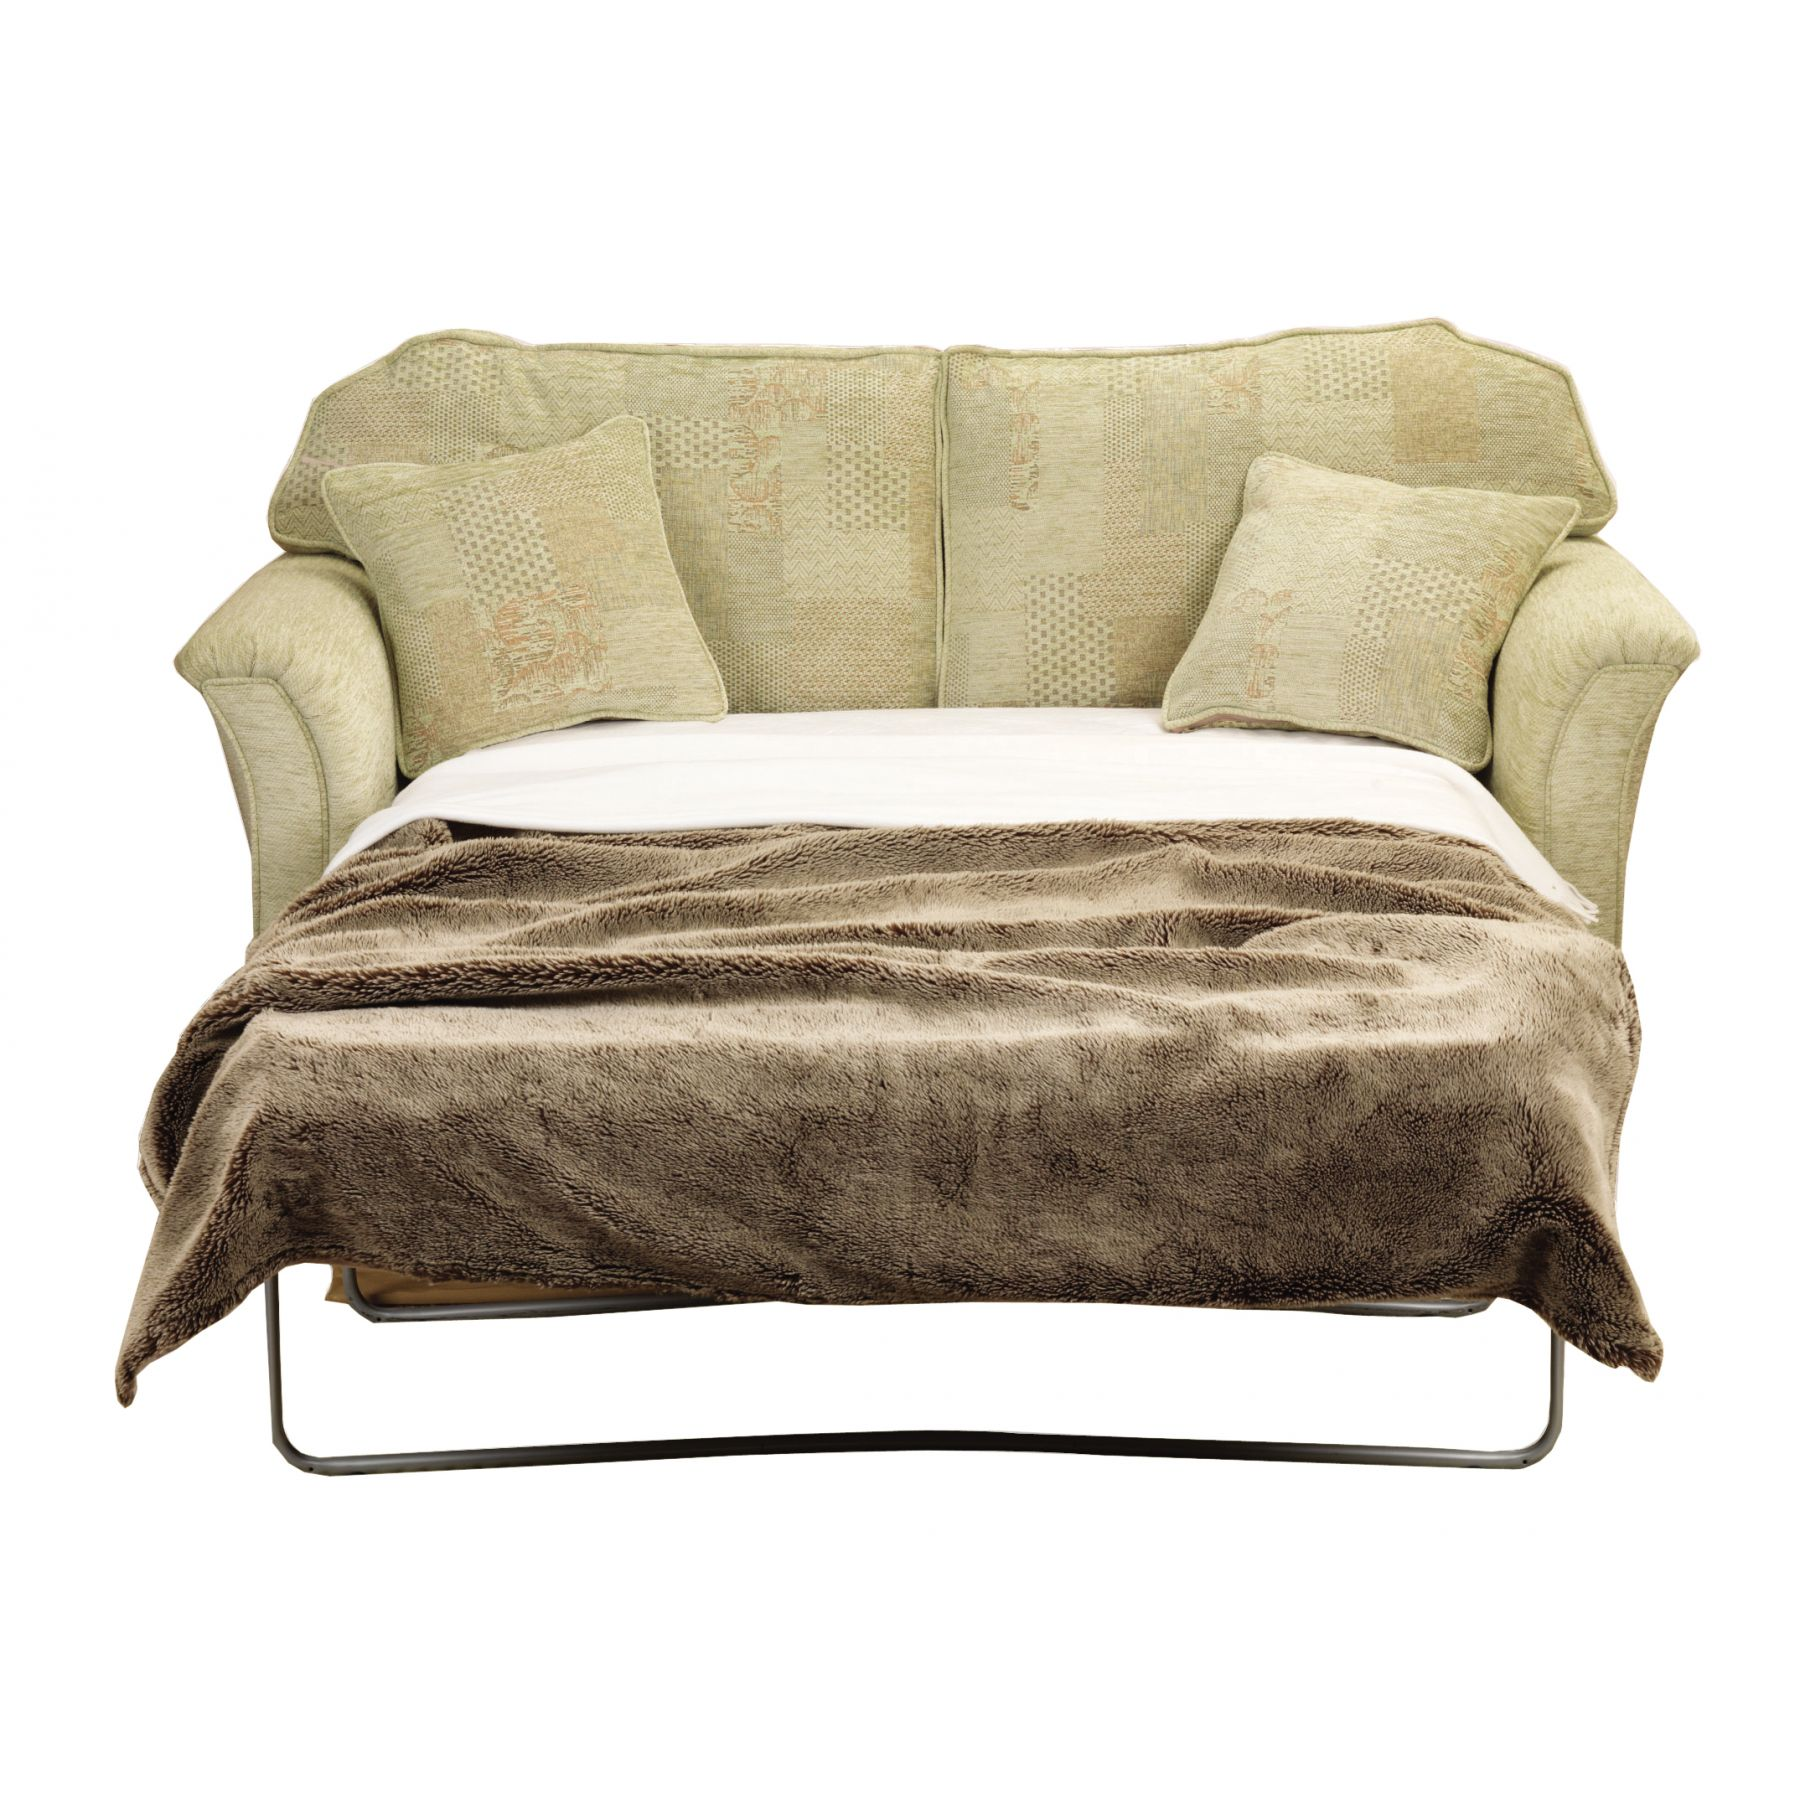 Convertible loveseat sofa bed with chaise couch sofa Loveseat sofa bed